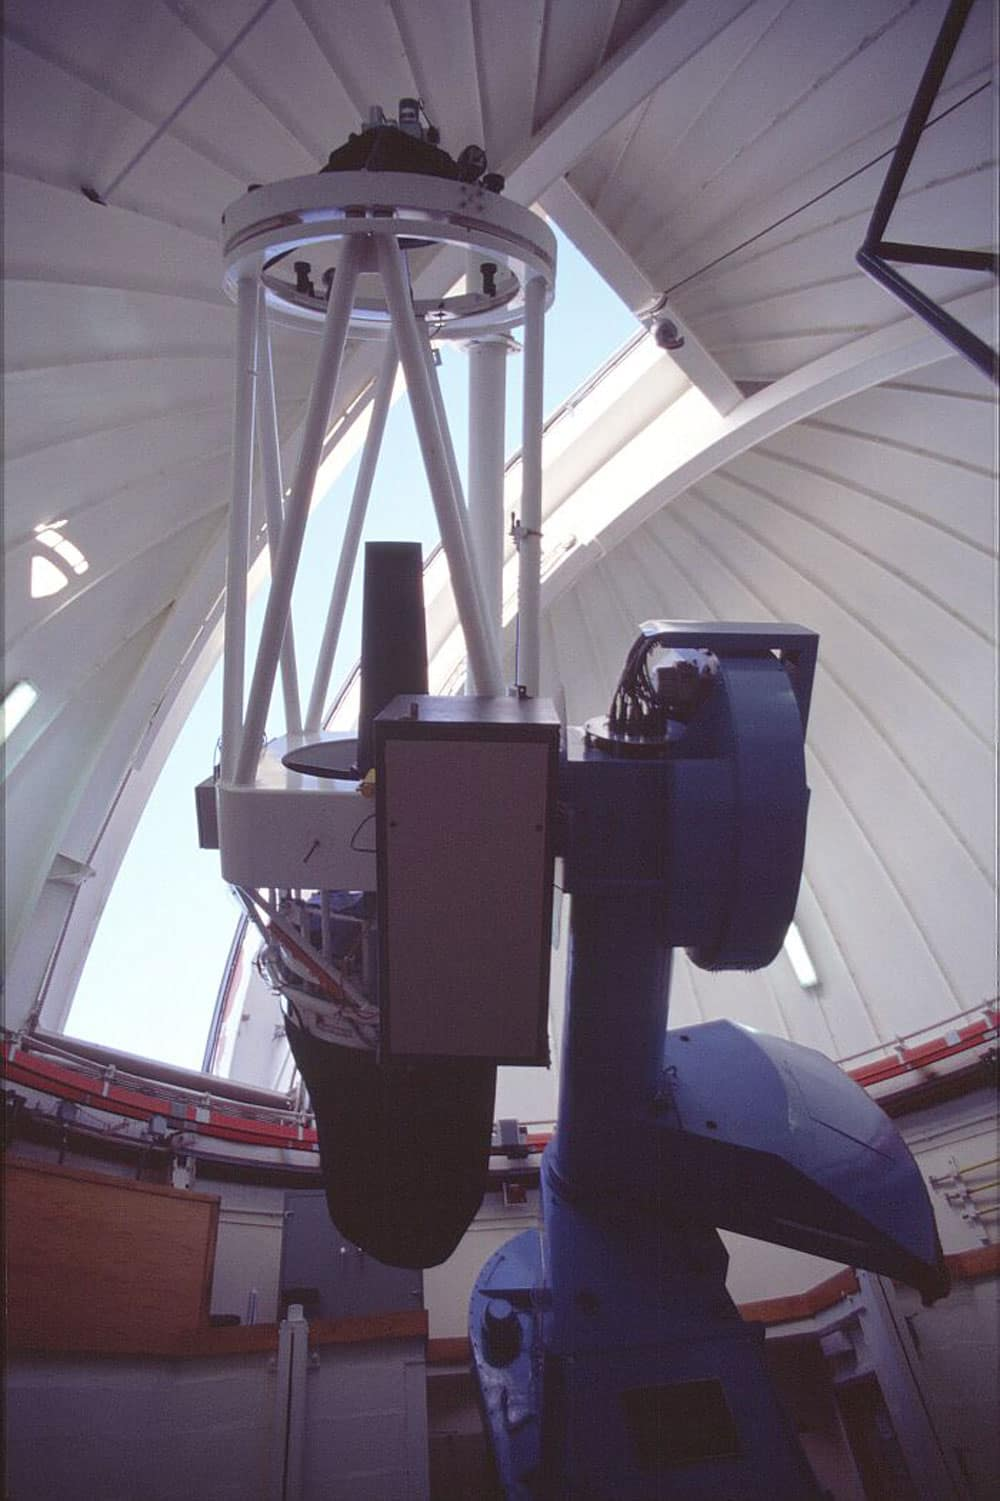 Southeastern Association for Research in Astronomy (SARA) telescope